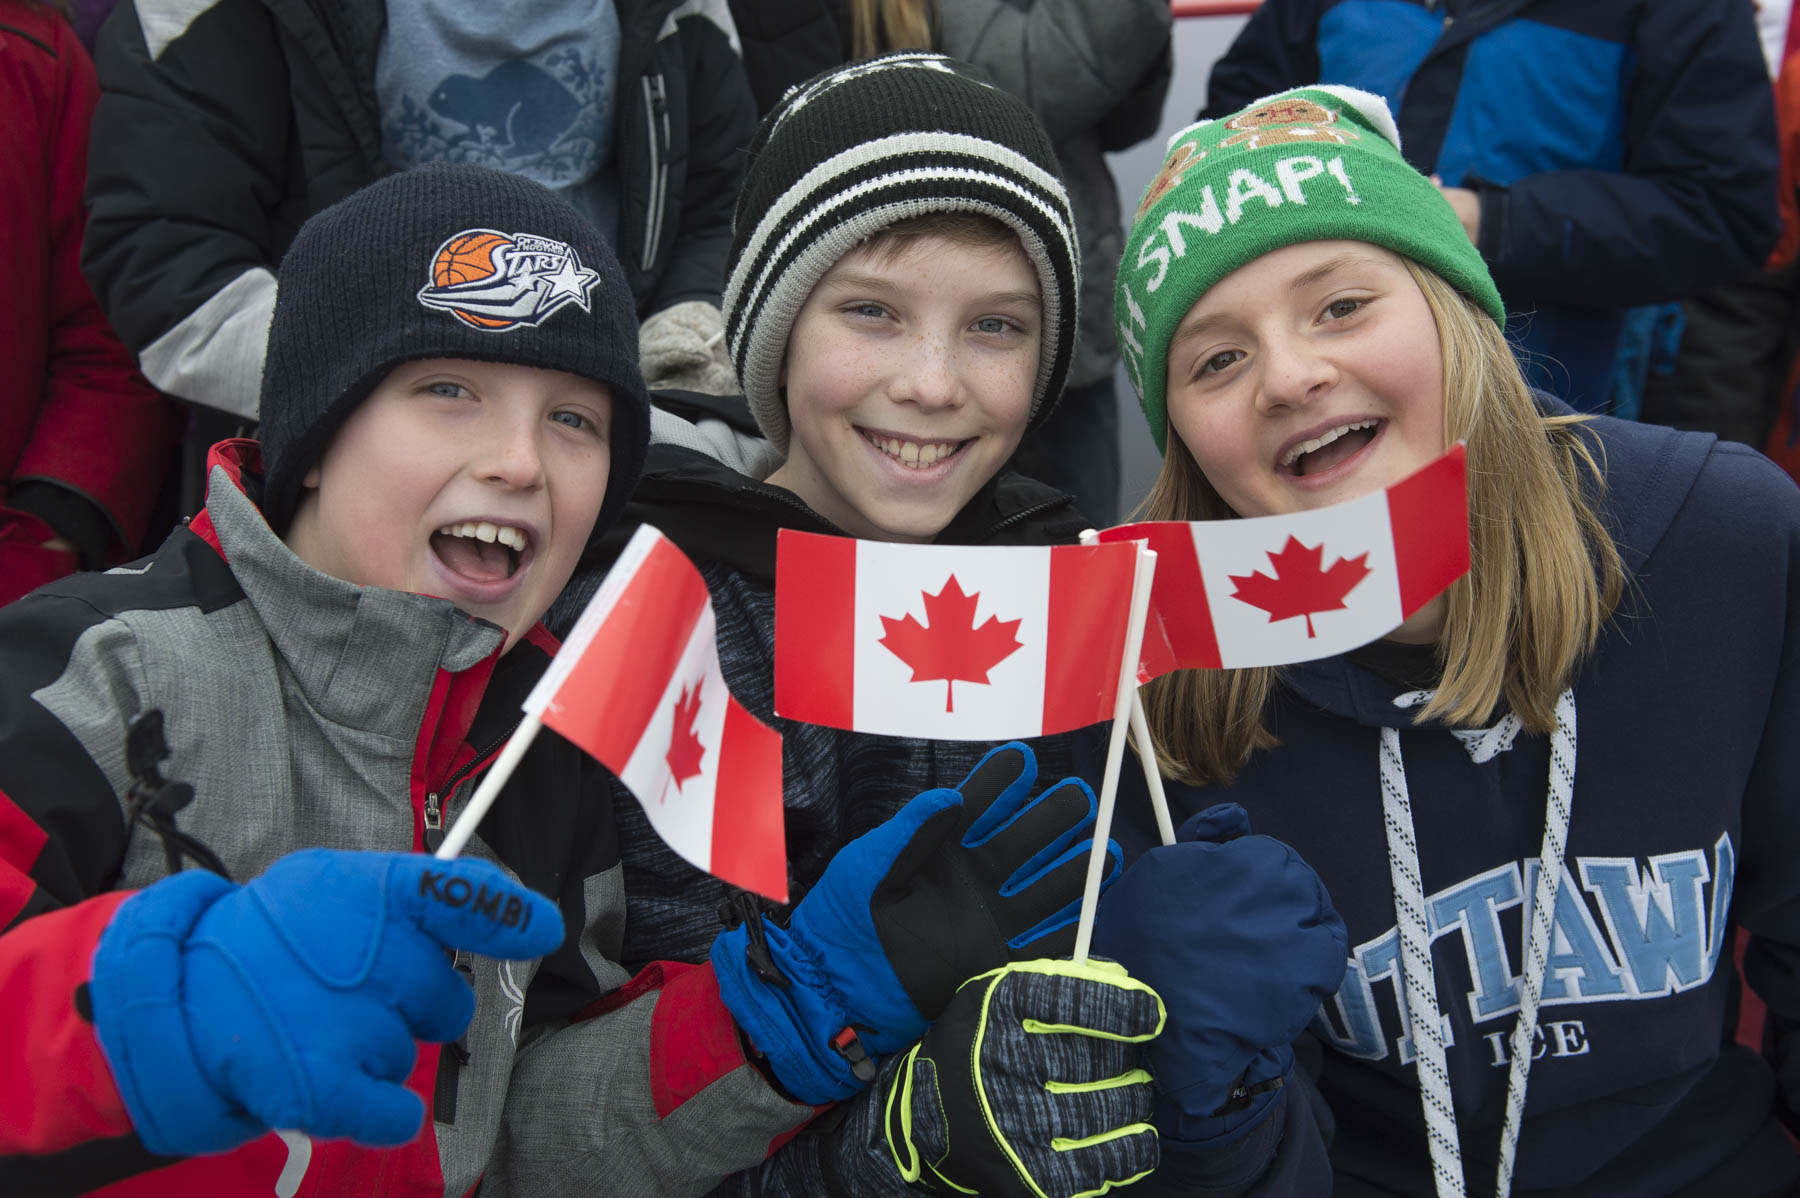 Members of the public watched the ceremony with their Canadian flags in hand.